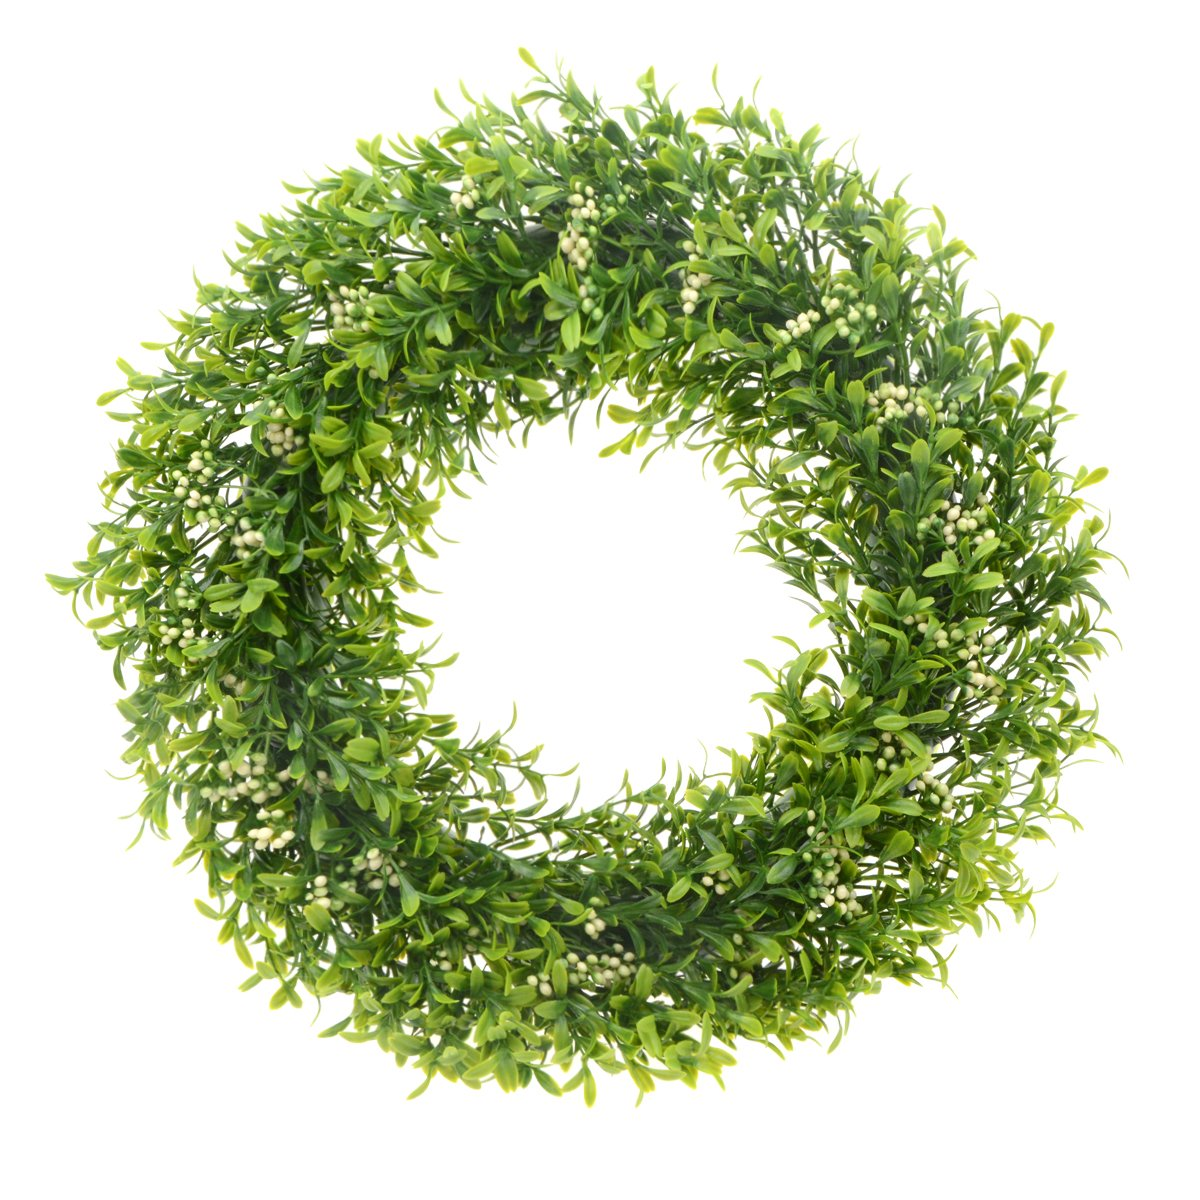 Saim 15''-16'' Artificial Round Wreath Spring Front Door Wreath Greenery Garland Home Office Wall Wedding Decor